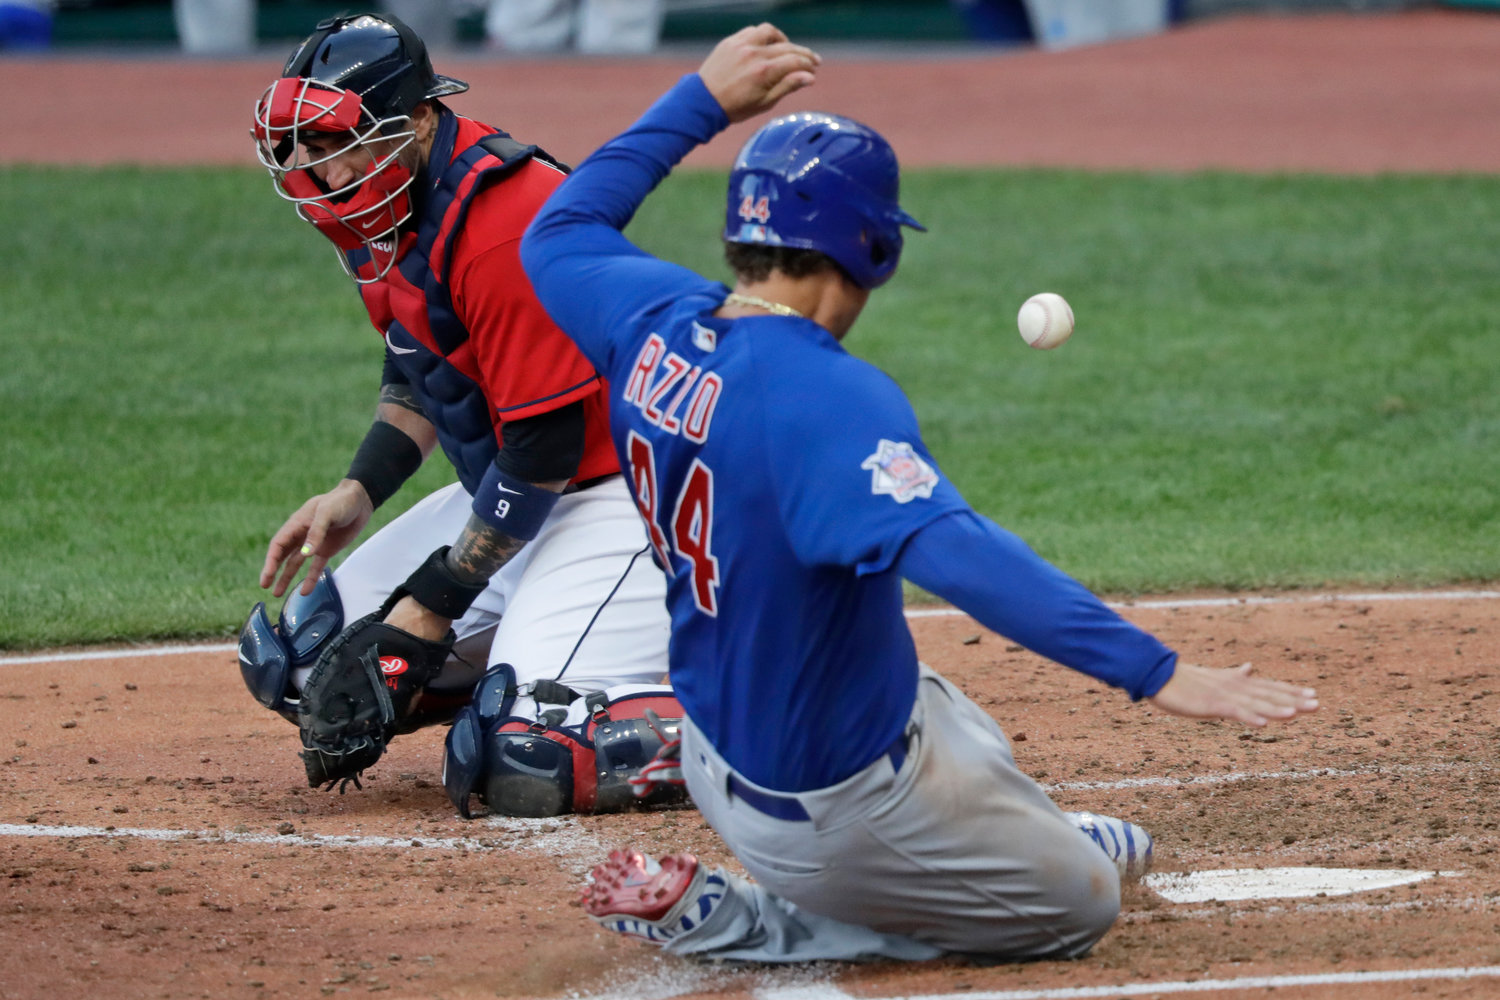 Chicago Cubs' Anthony Rizzo, right, scores as Cleveland Indians catcher Sandy Leon can't hold onto the ball in the fifth inning in a baseball game, Wednesday, Aug. 12, 2020, in Cleveland. (AP Photo/Tony Dejak)